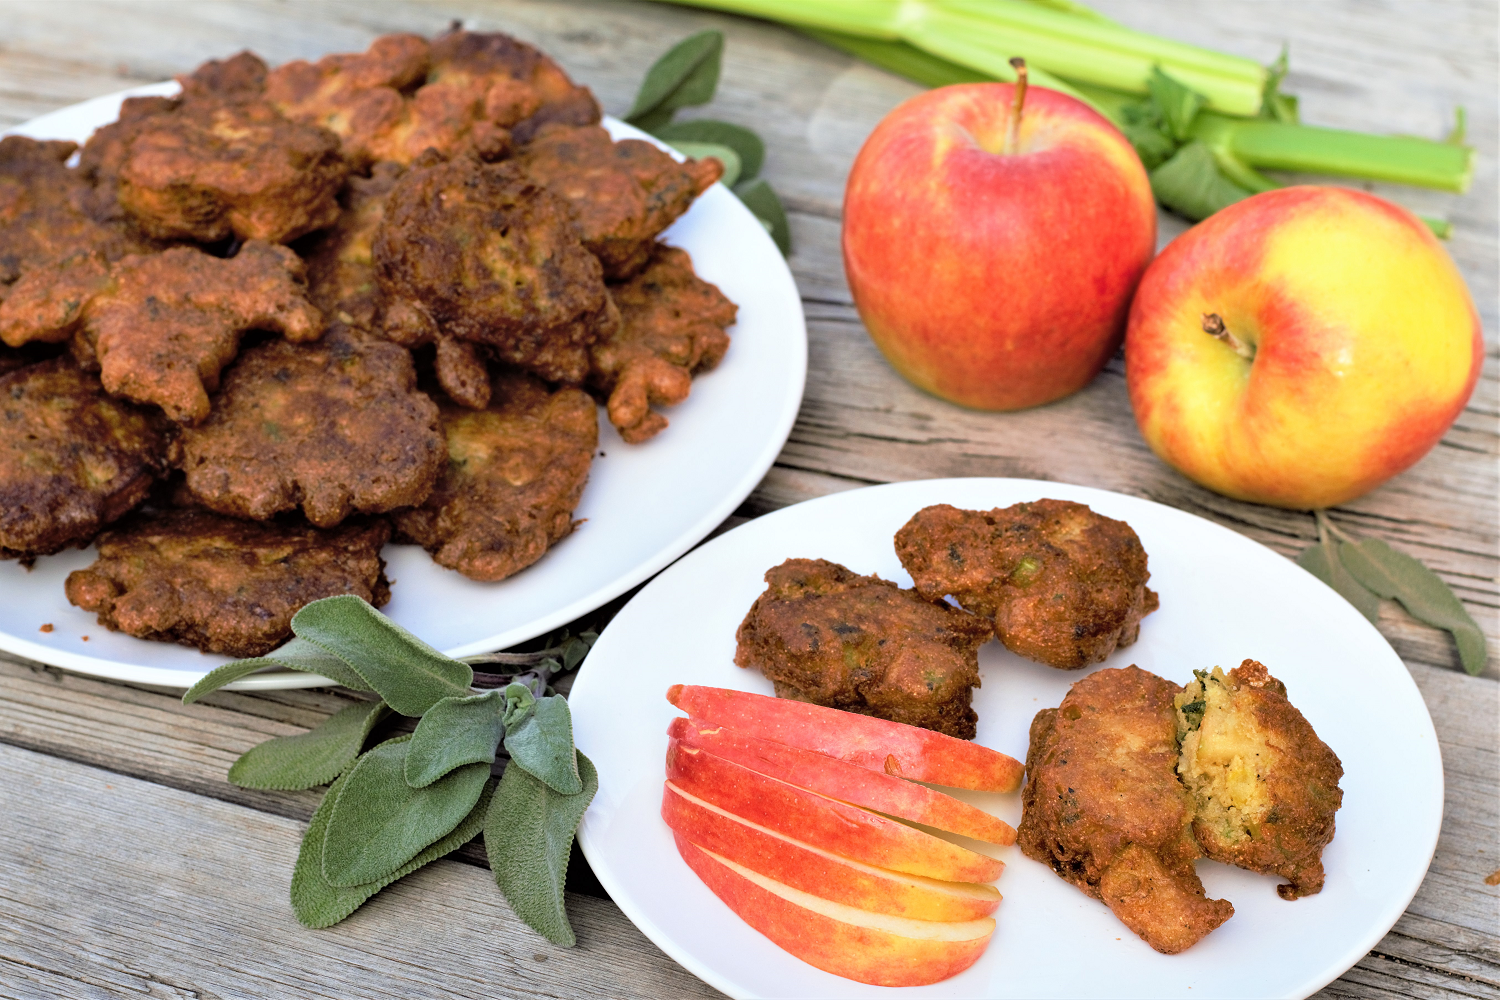 Pakora-inspired fritters stuffed with apples, celery, & onion, flavored with fresh sage fried in browned butter for an herby, rich Thanksgiving appetizer!